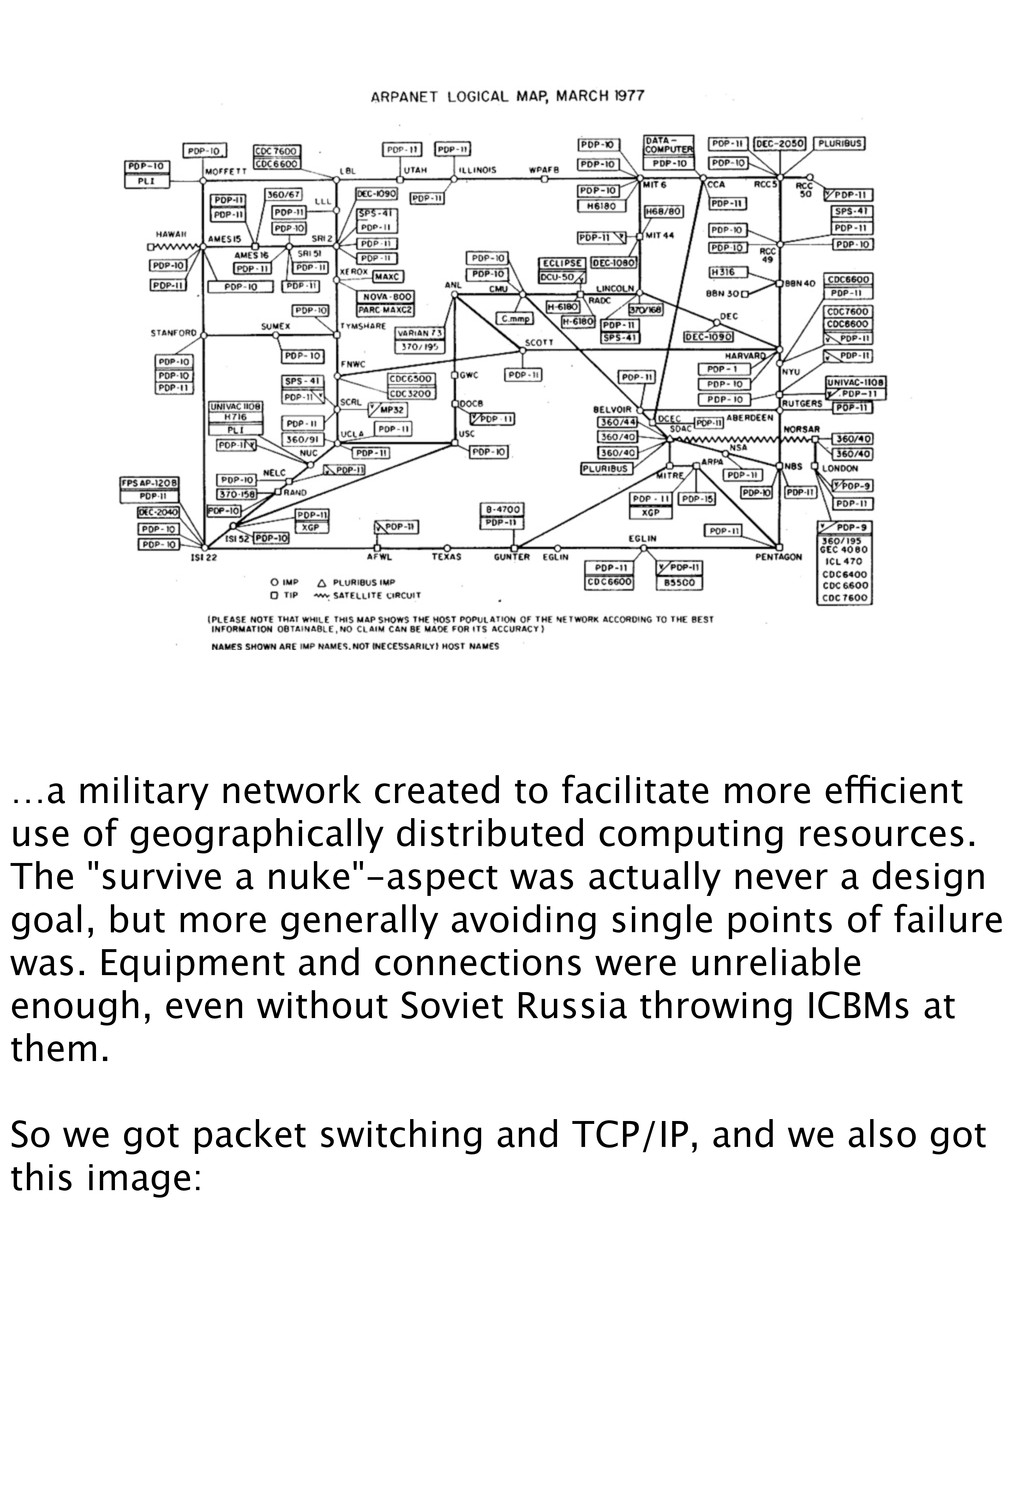 …a military network created to facilitate more ...